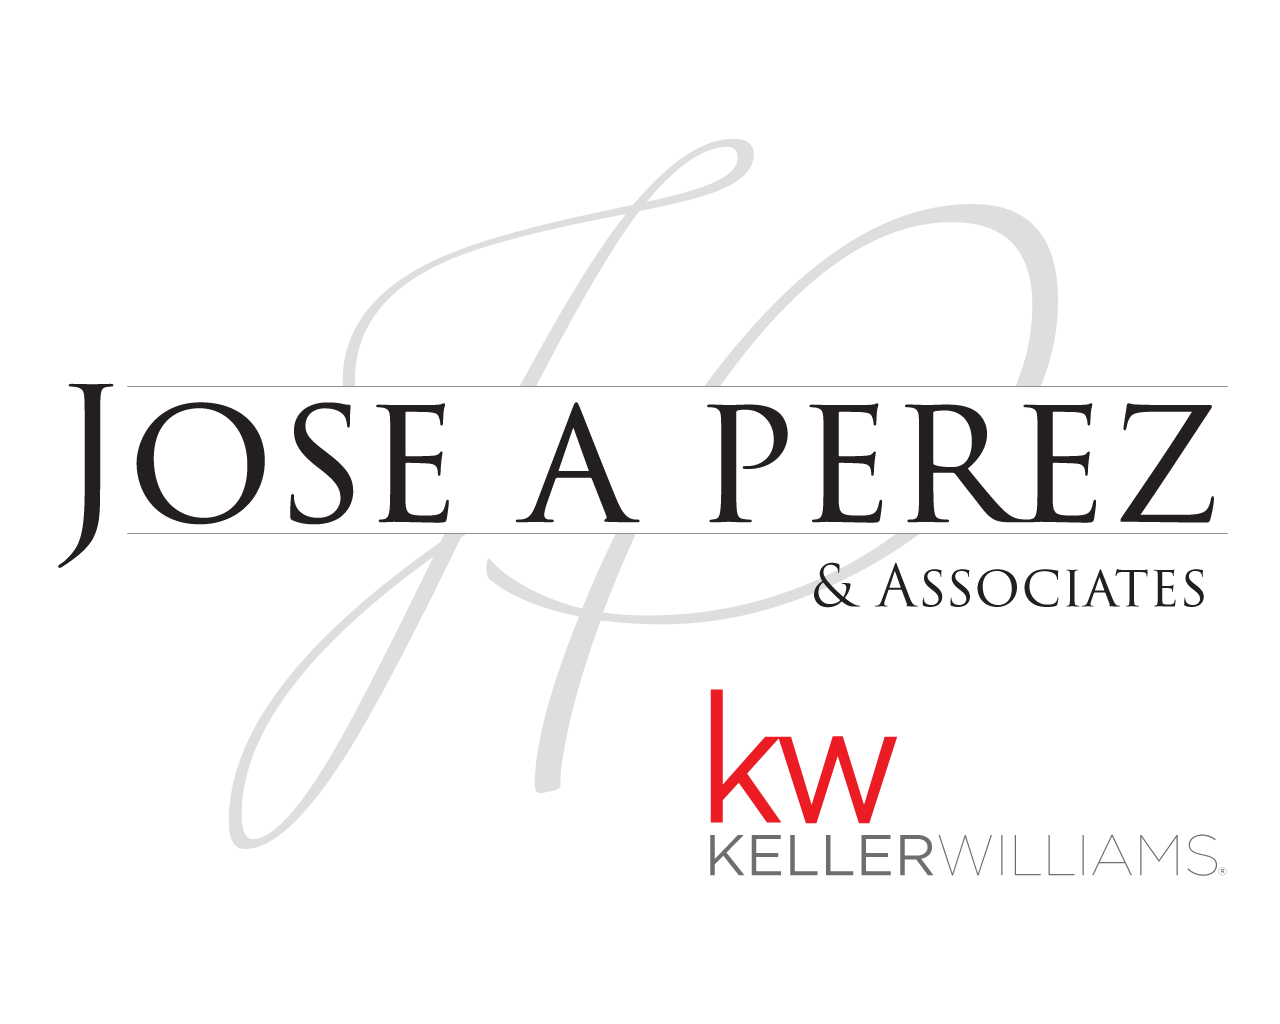 Jose Perez and Associates Corona